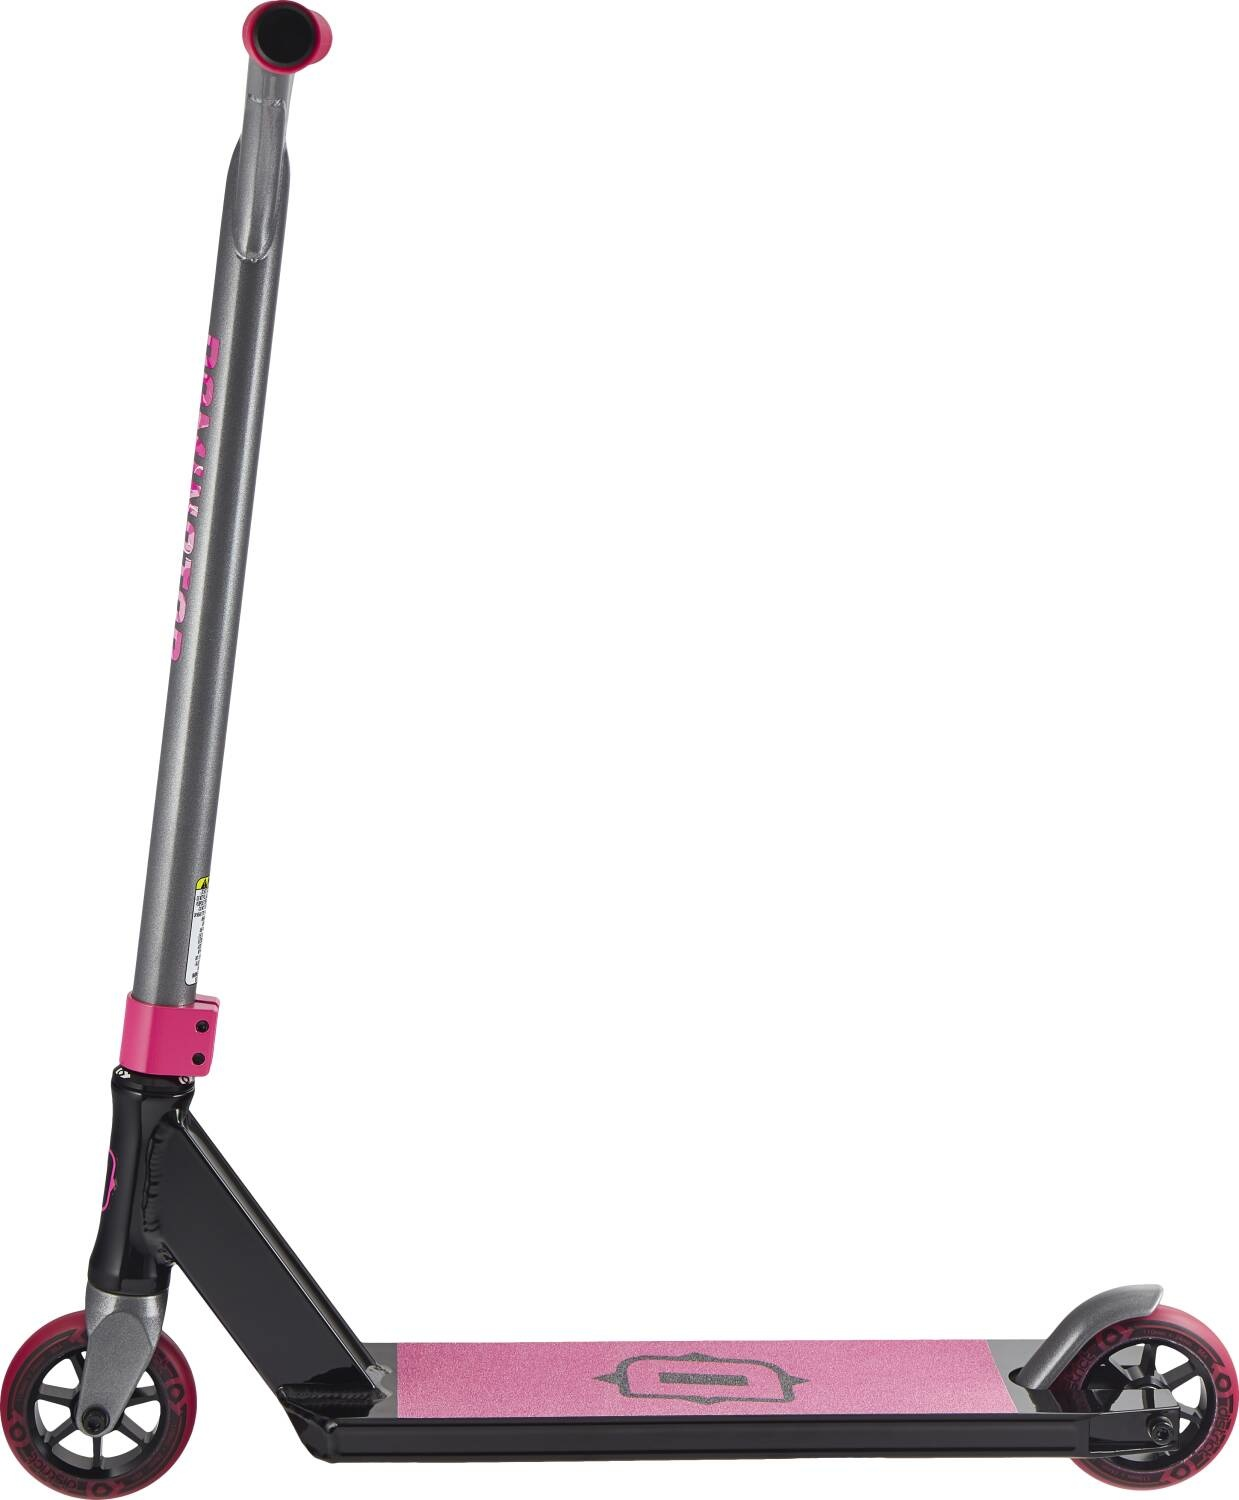 BOMBER SCOOTERS Dominator Airborne Stunt Scooter,  Schwarz/Rosa